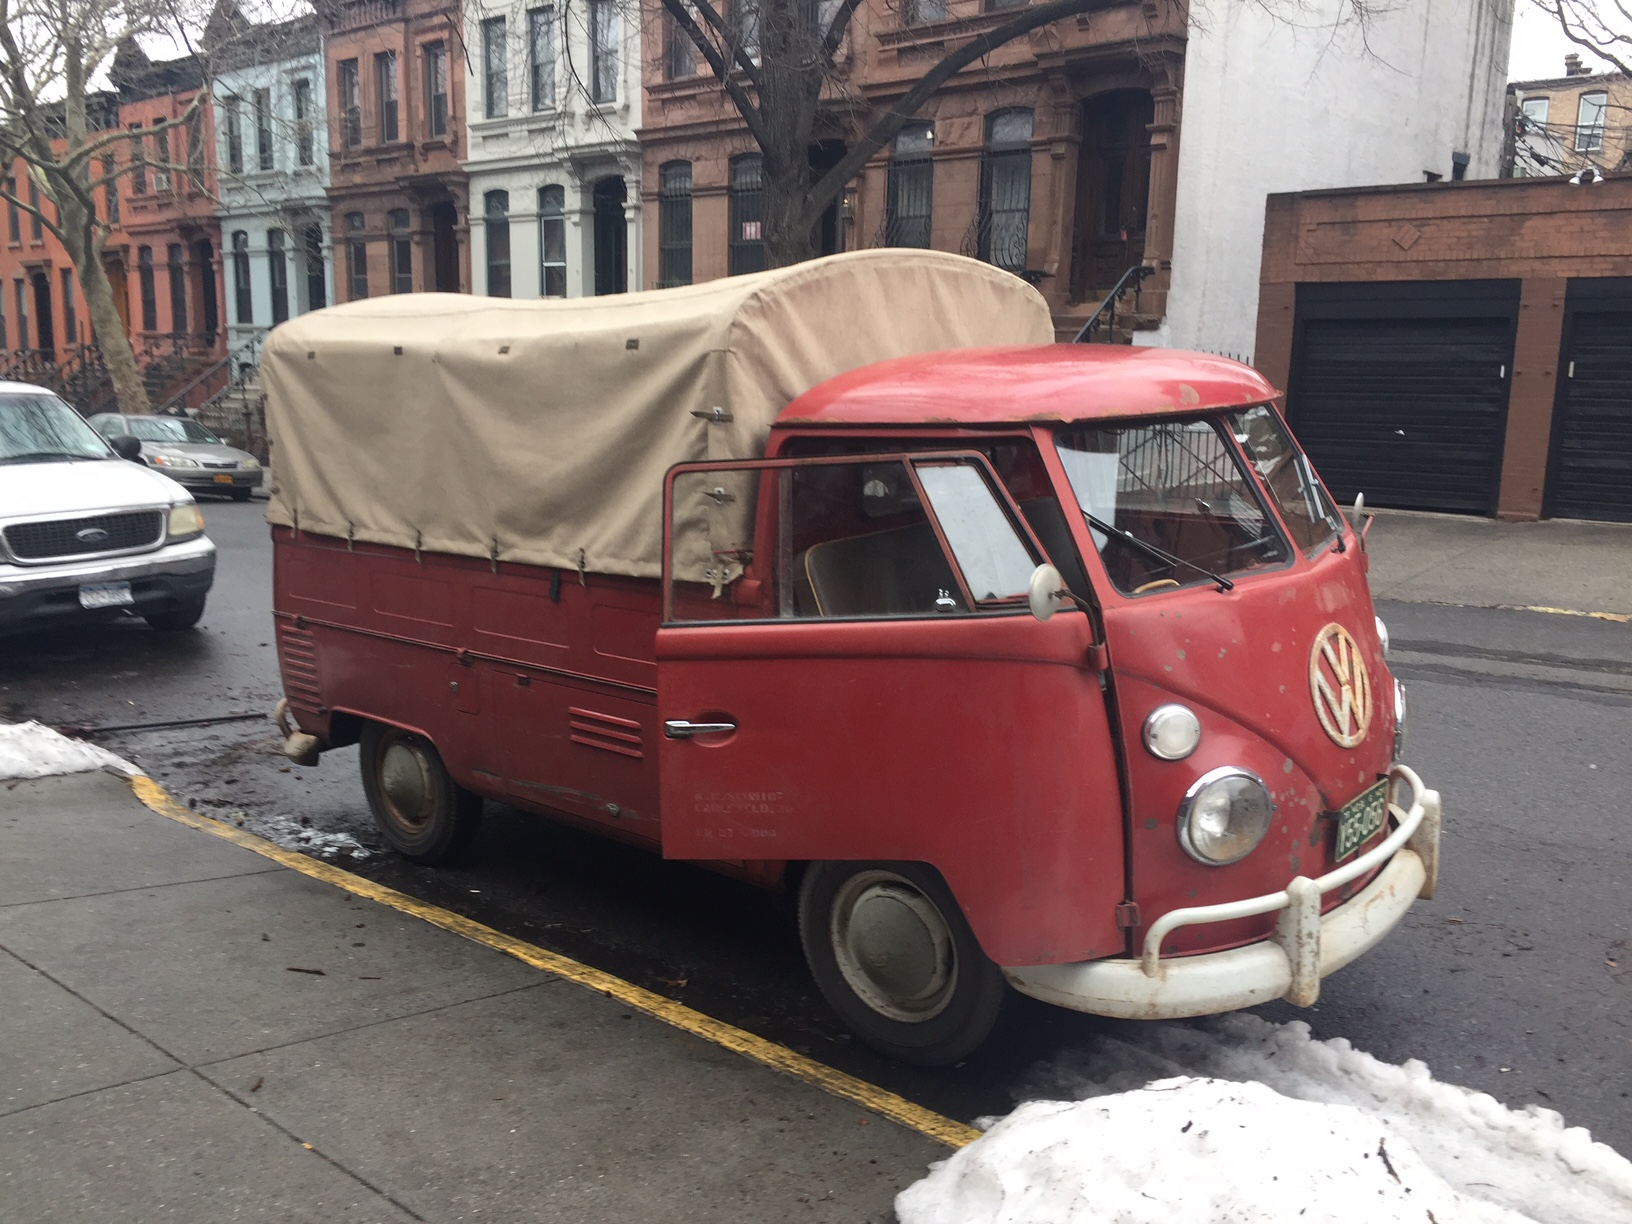 a93773fed0 Red t1 utility van with canvas bed cover parked on street